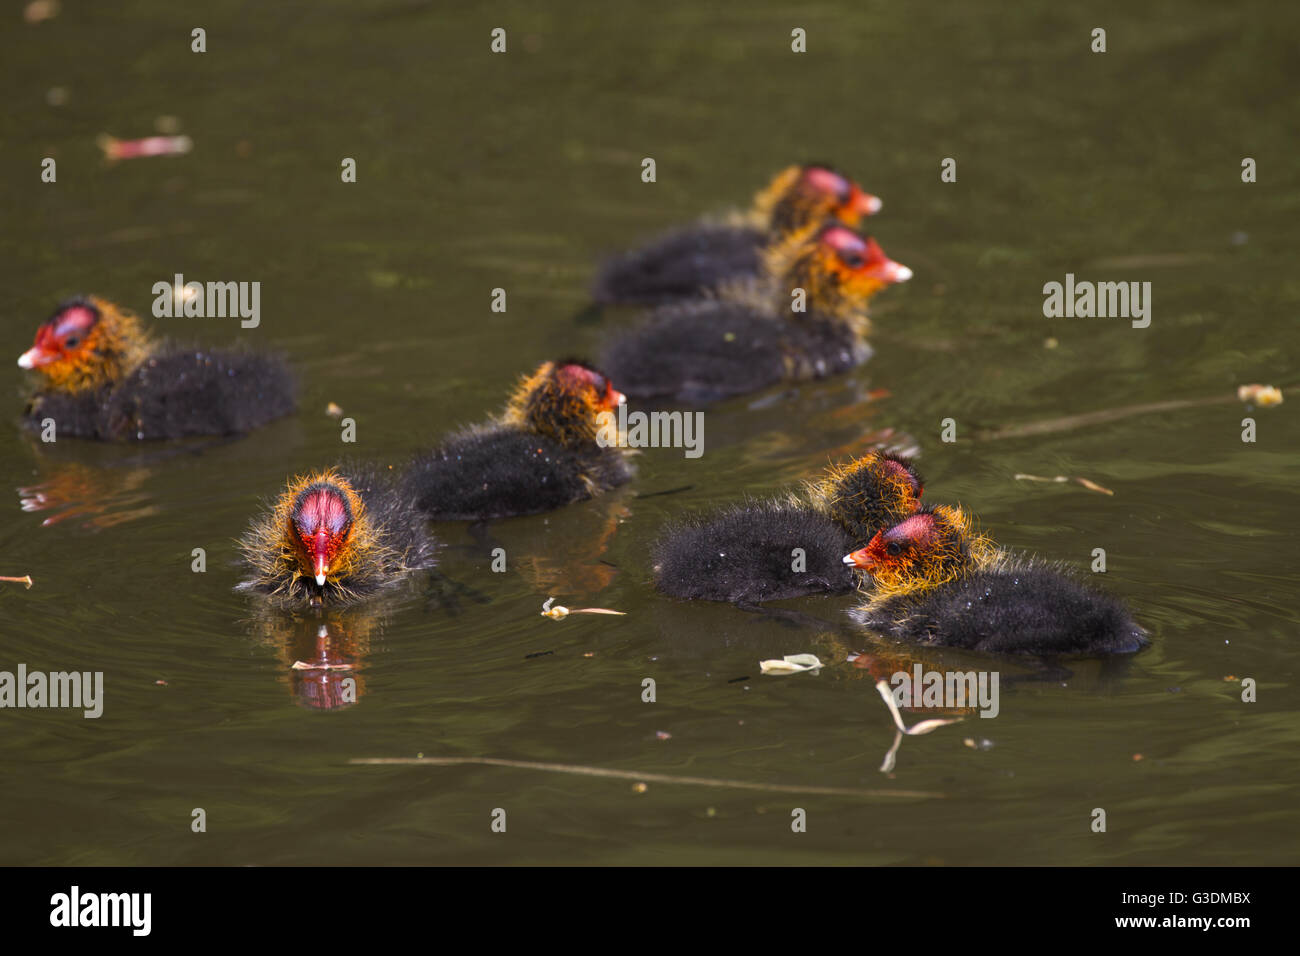 Coot chicks floating in canal. West Midlands - Stock Image